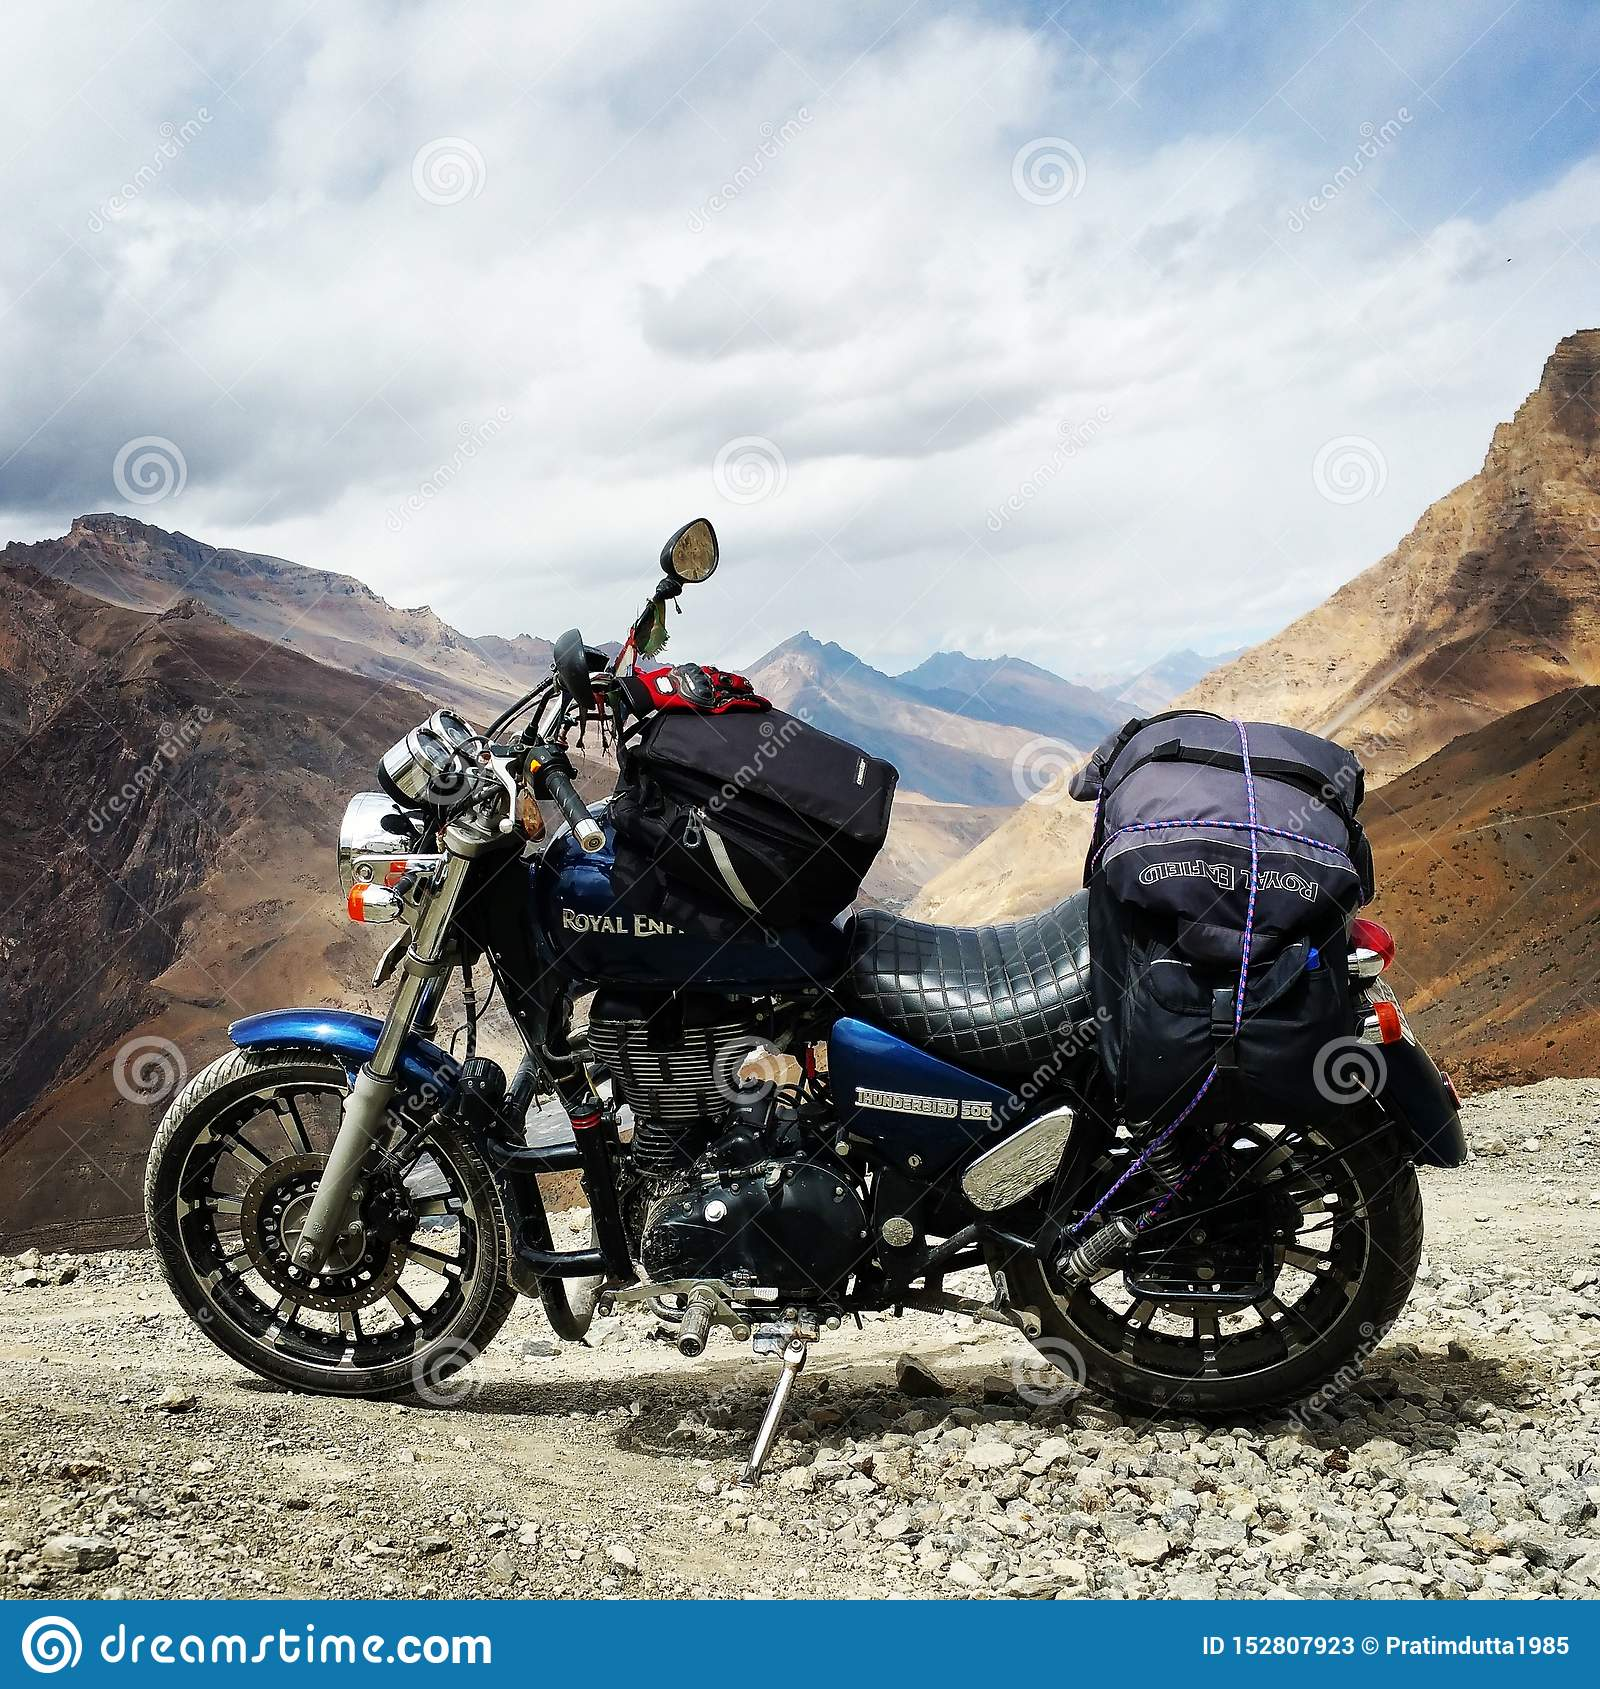 2 119 Royal Enfield Photos Free Royalty Free Stock Photos From Dreamstime See actions taken by the people who manage and post content. https www dreamstime com royal enfield thunderbird spiti valley image152807923